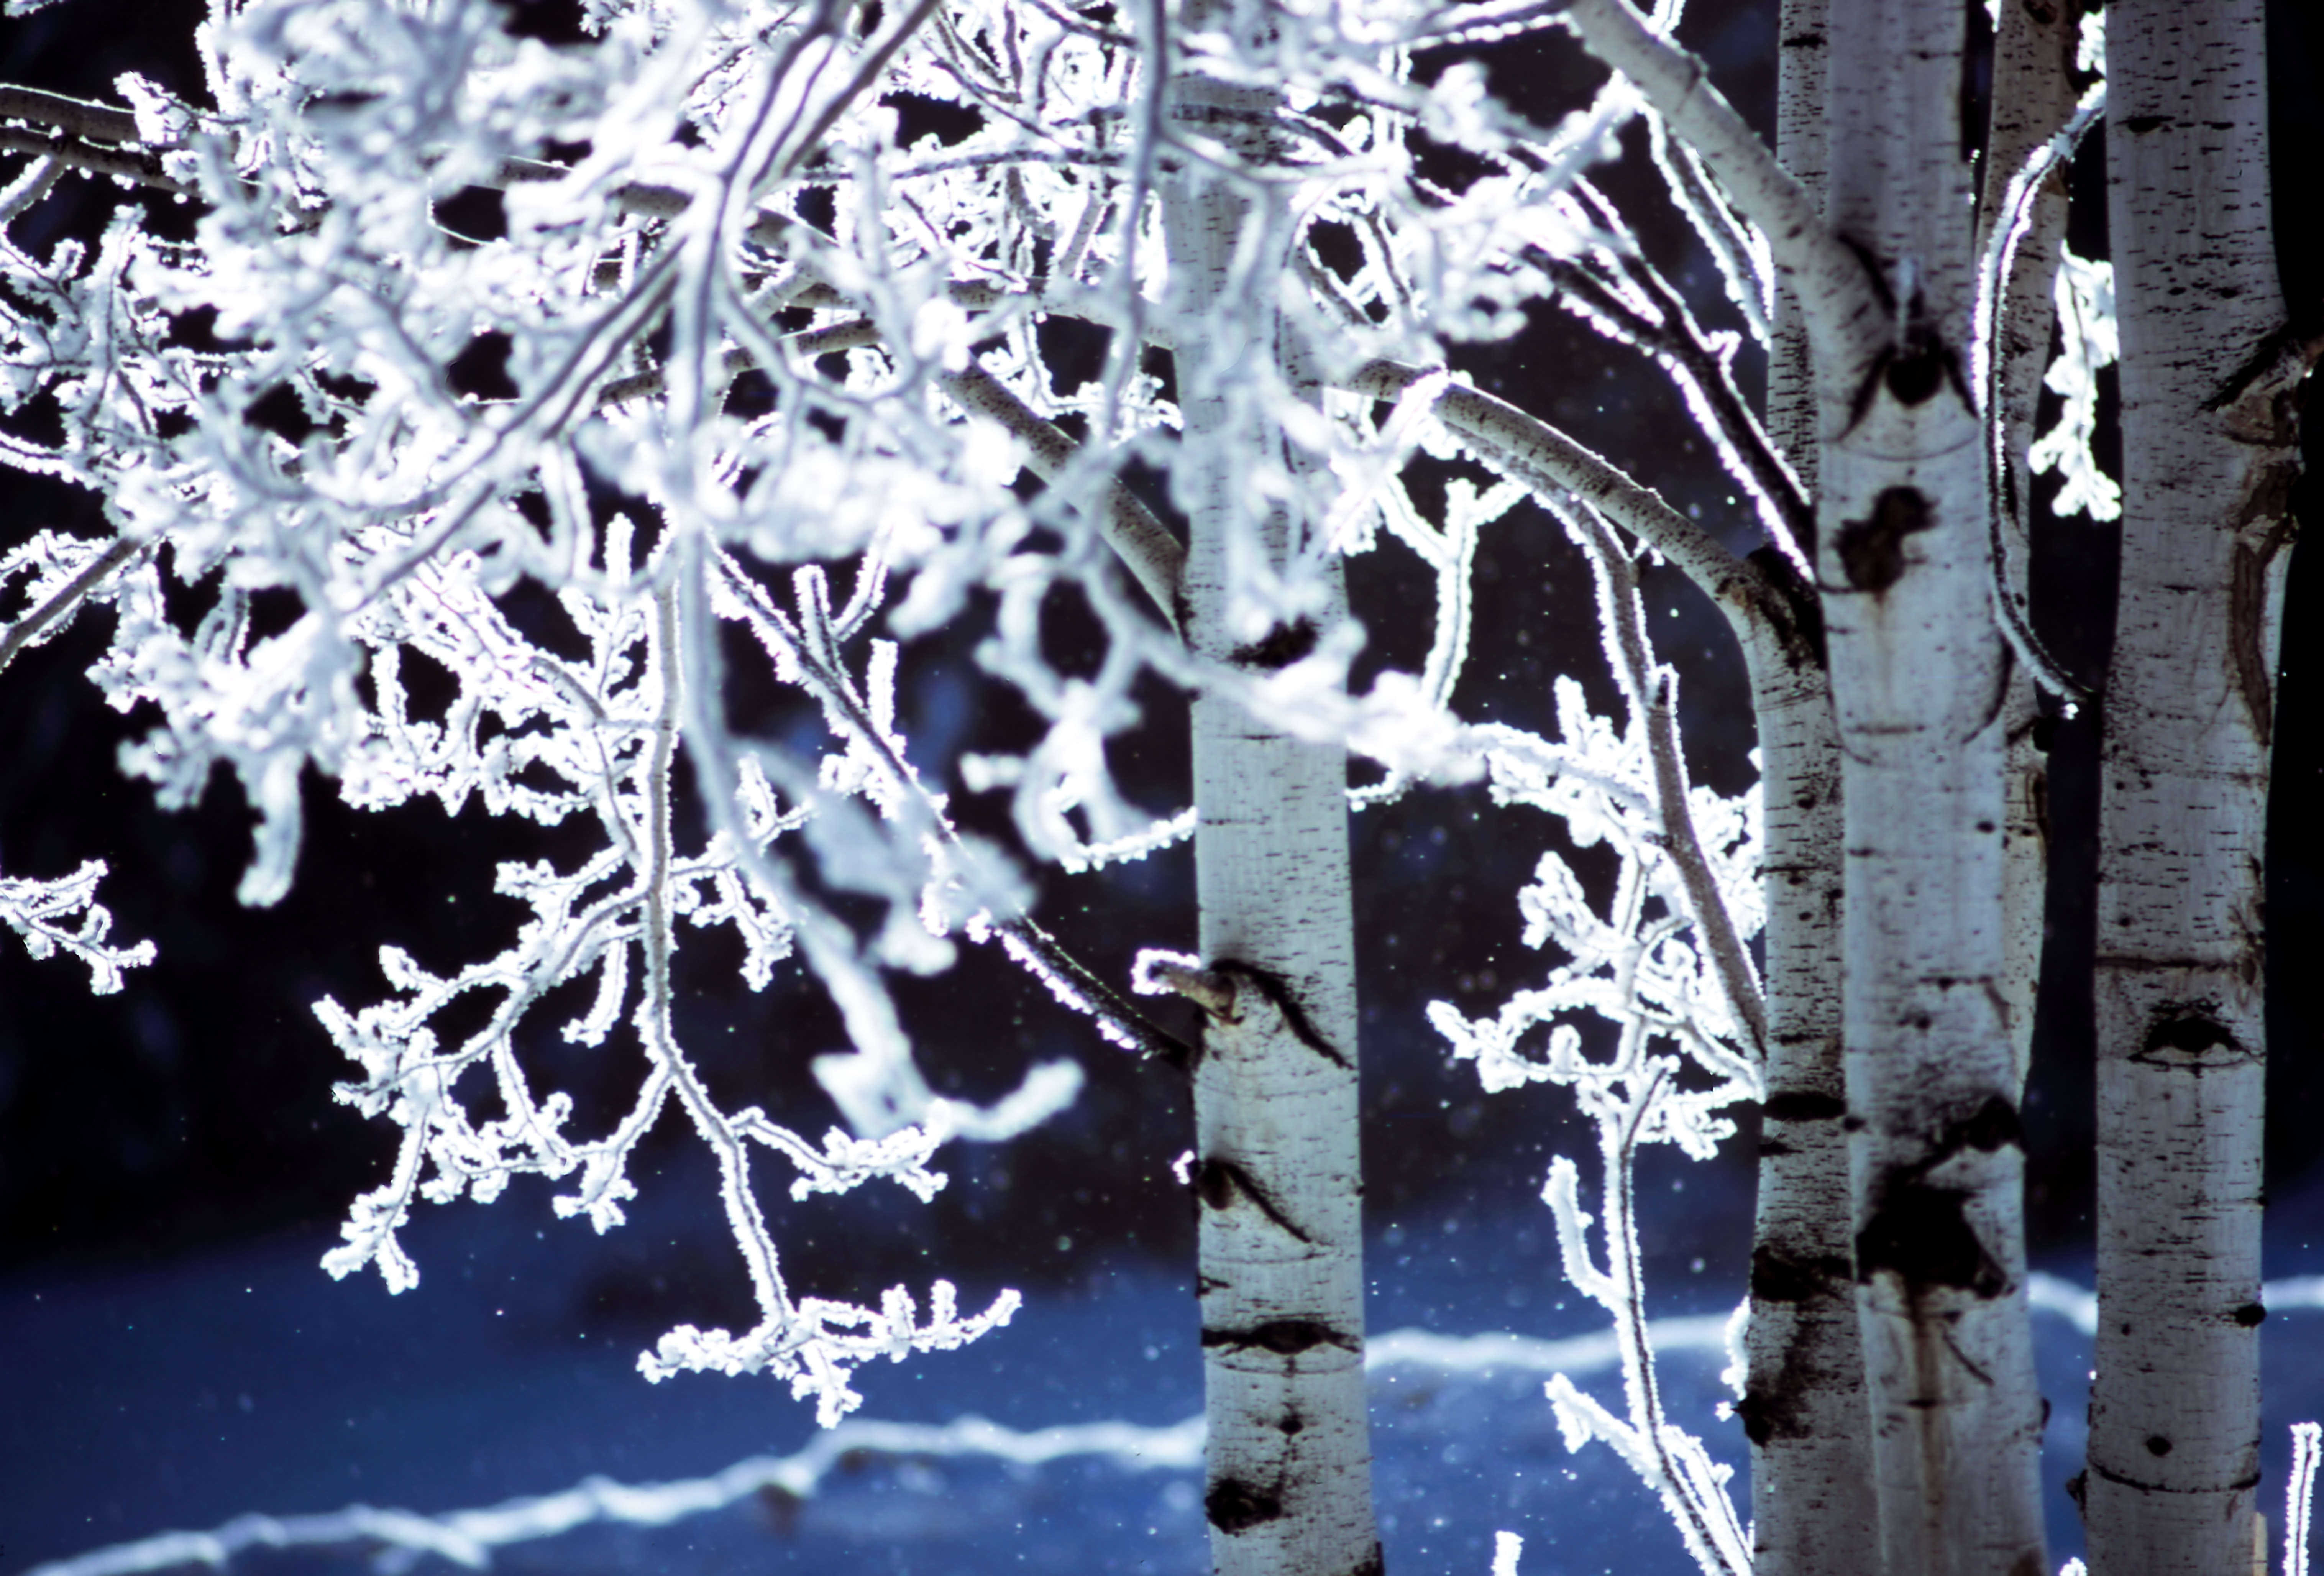 A macro shot of tree branches covered with snow and ice on a winter night